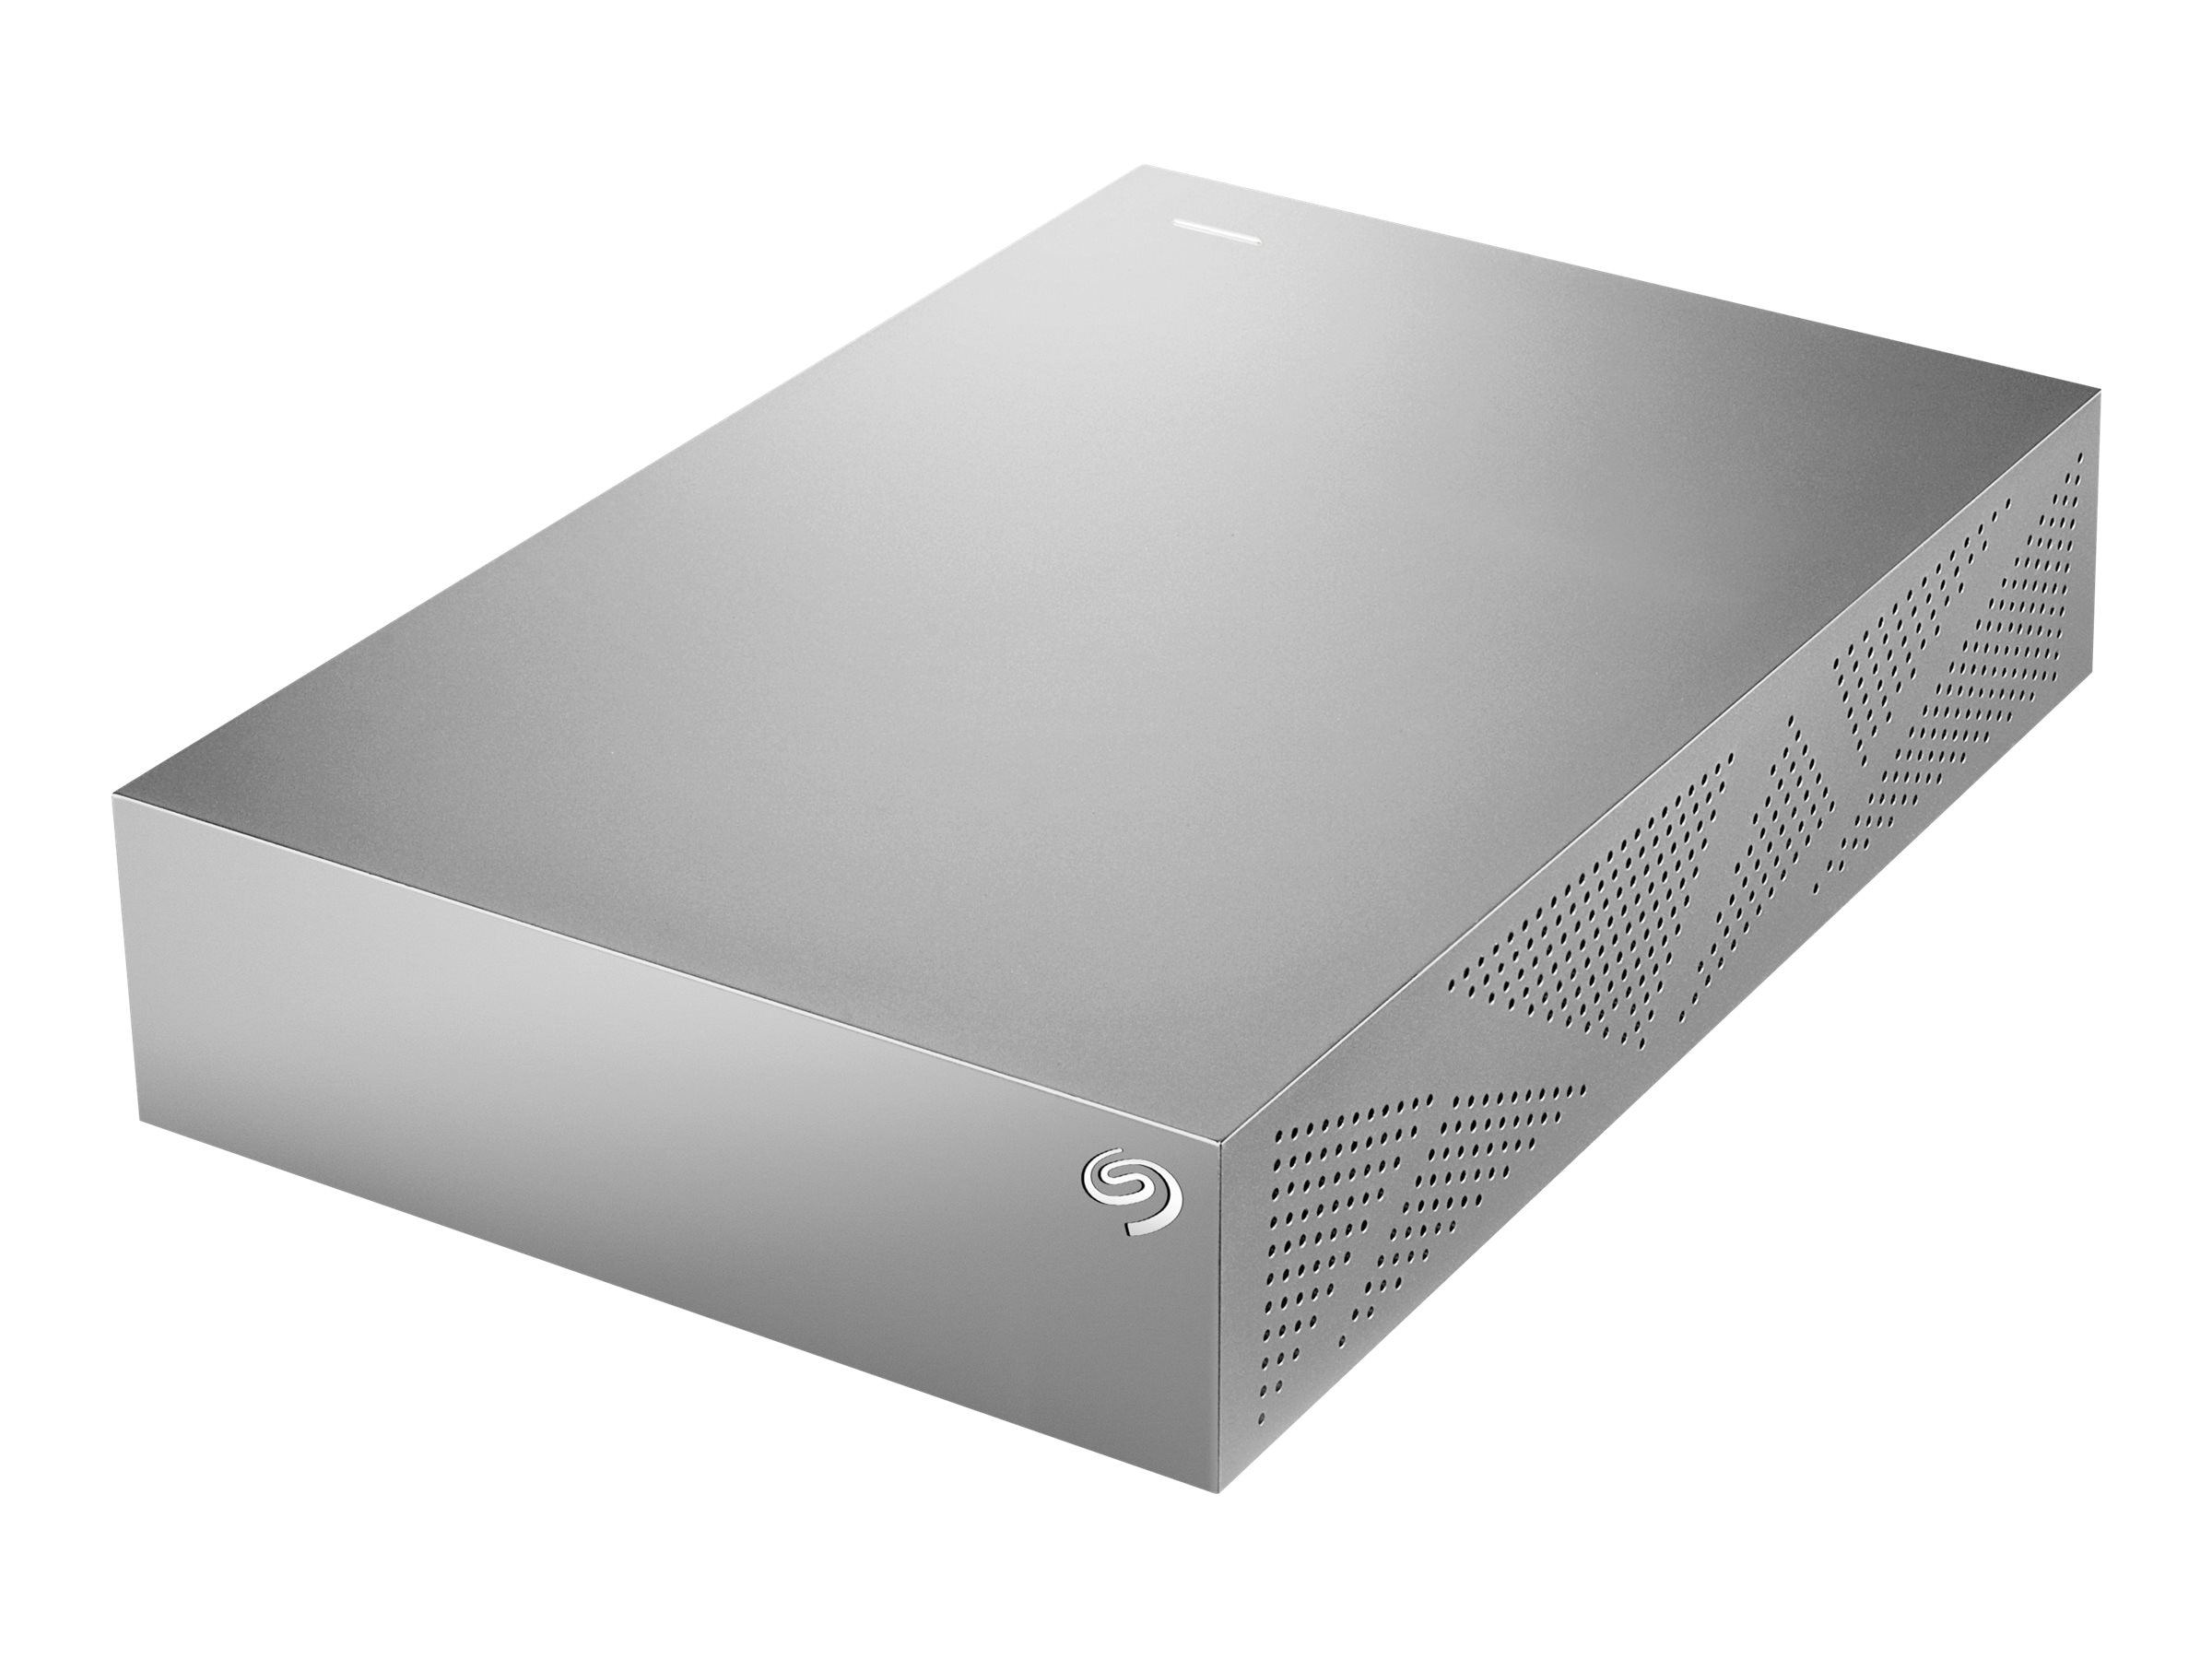 Seagate 3TB Backup Plus for Mac USB 3.0 2.5 External Hard Drive, STDU3000101, 16793877, Hard Drives - External